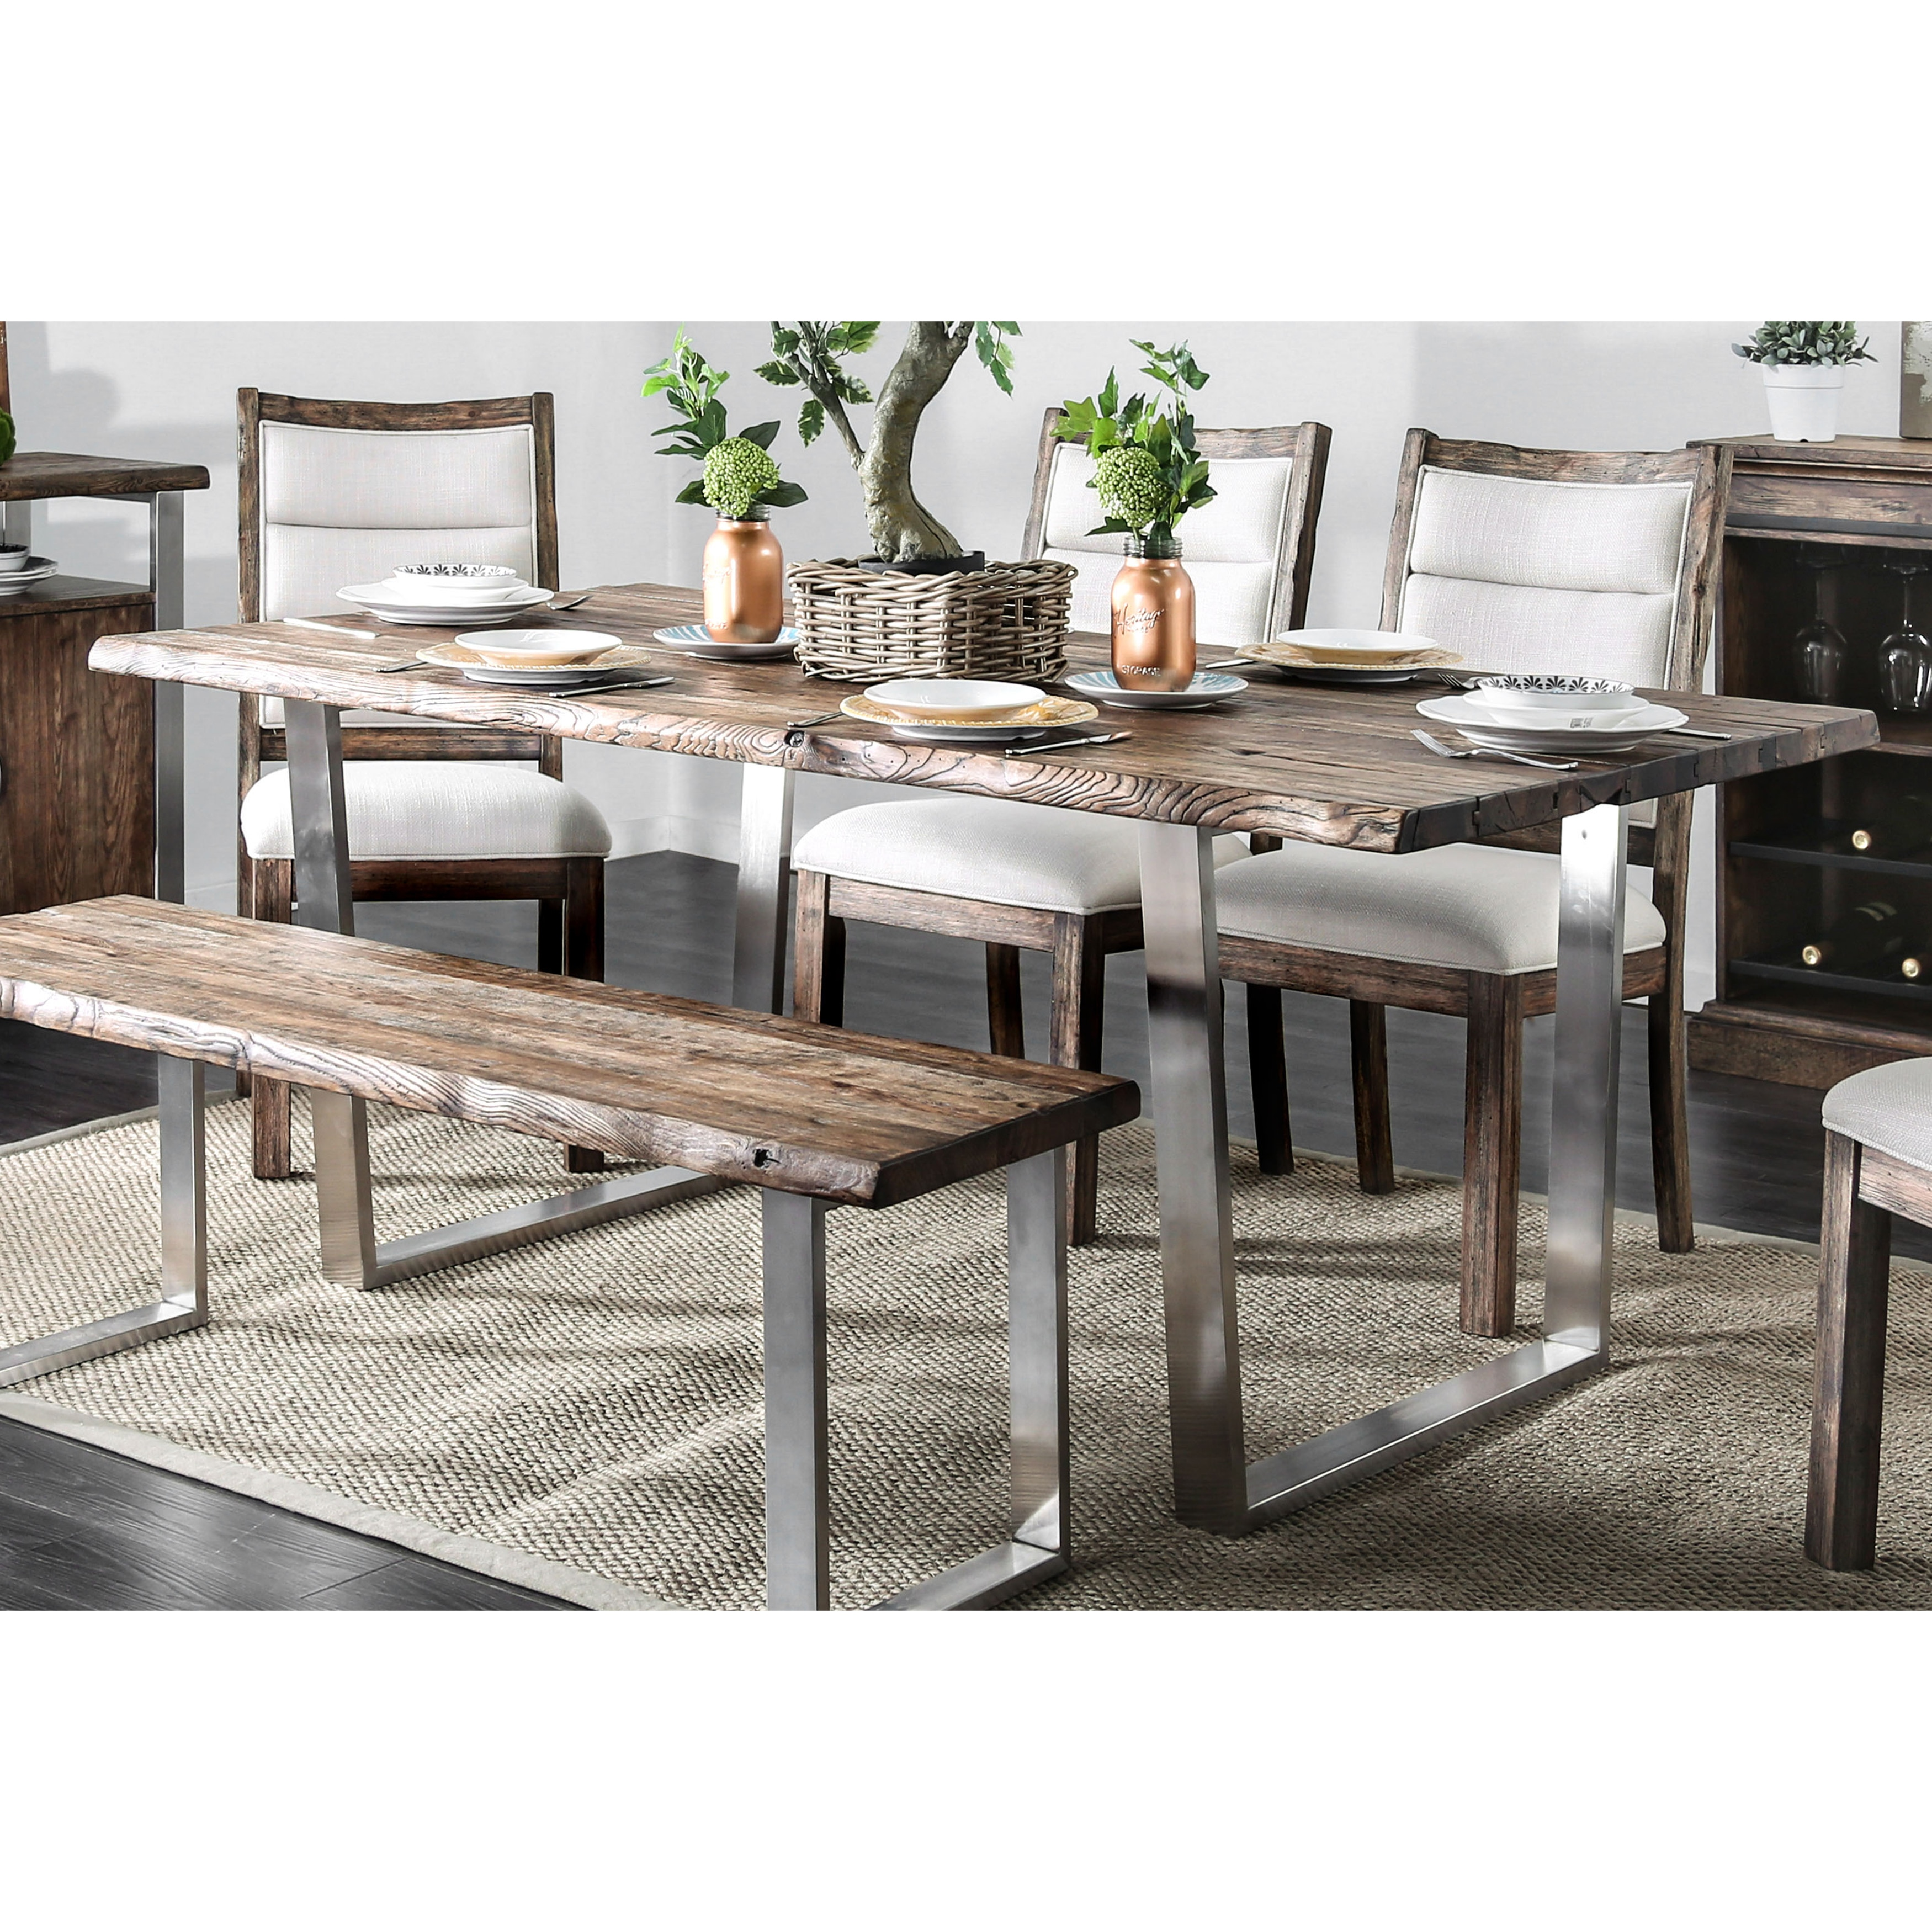 Carbon Loft Bern Rustic 76-inch Dining Table